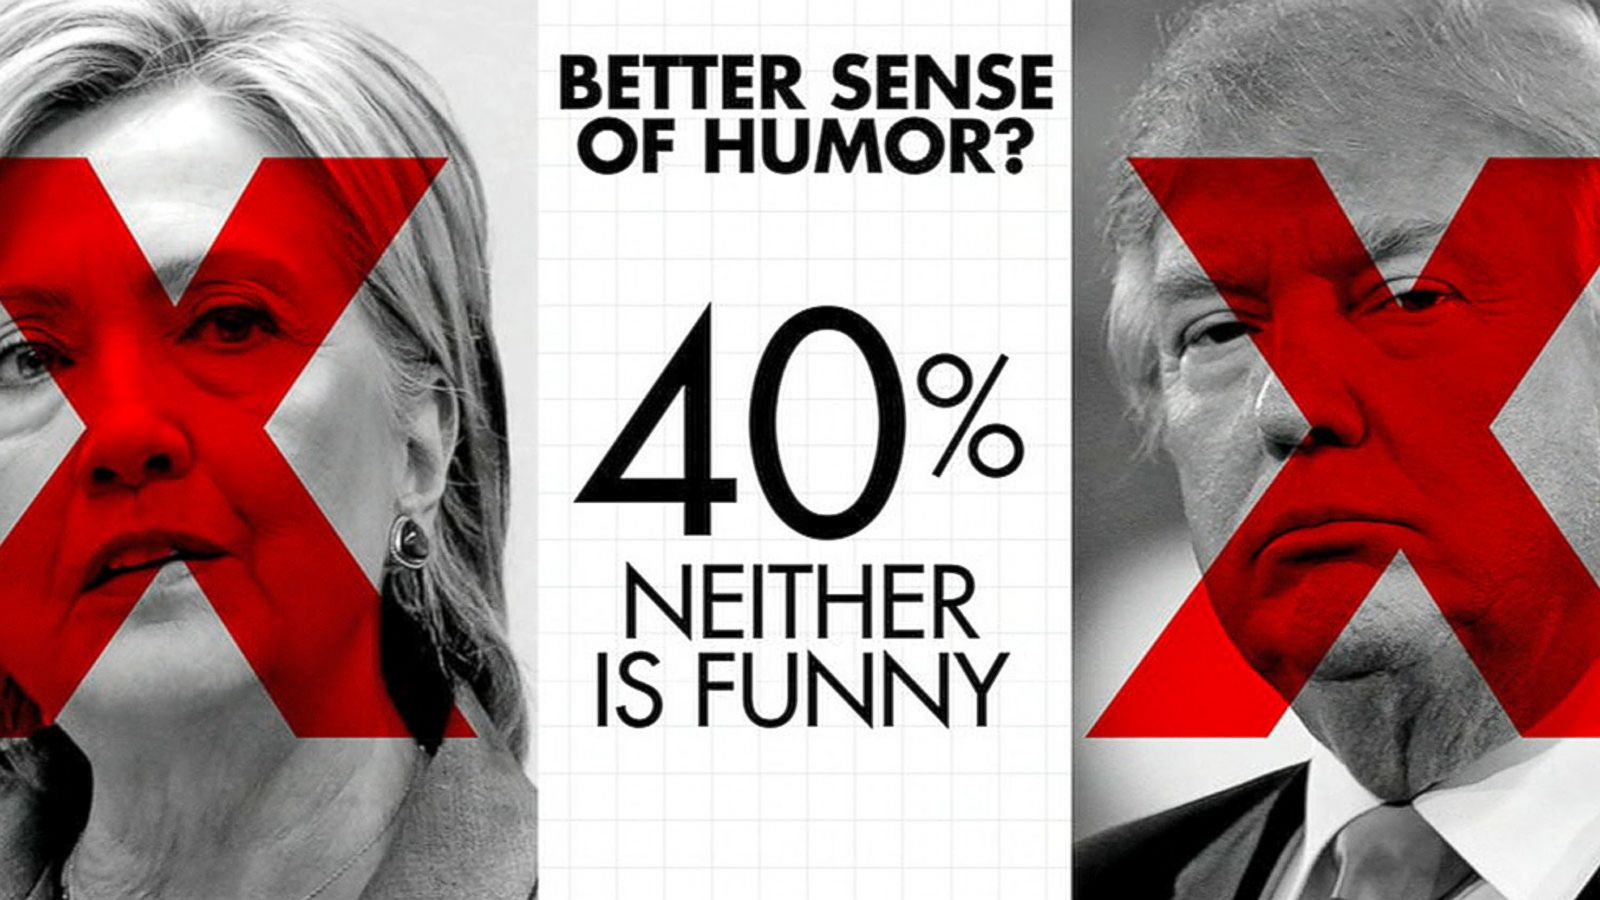 VIDEO: 40 Percent of Americans Say Neither Trump or Clinton Is Funny